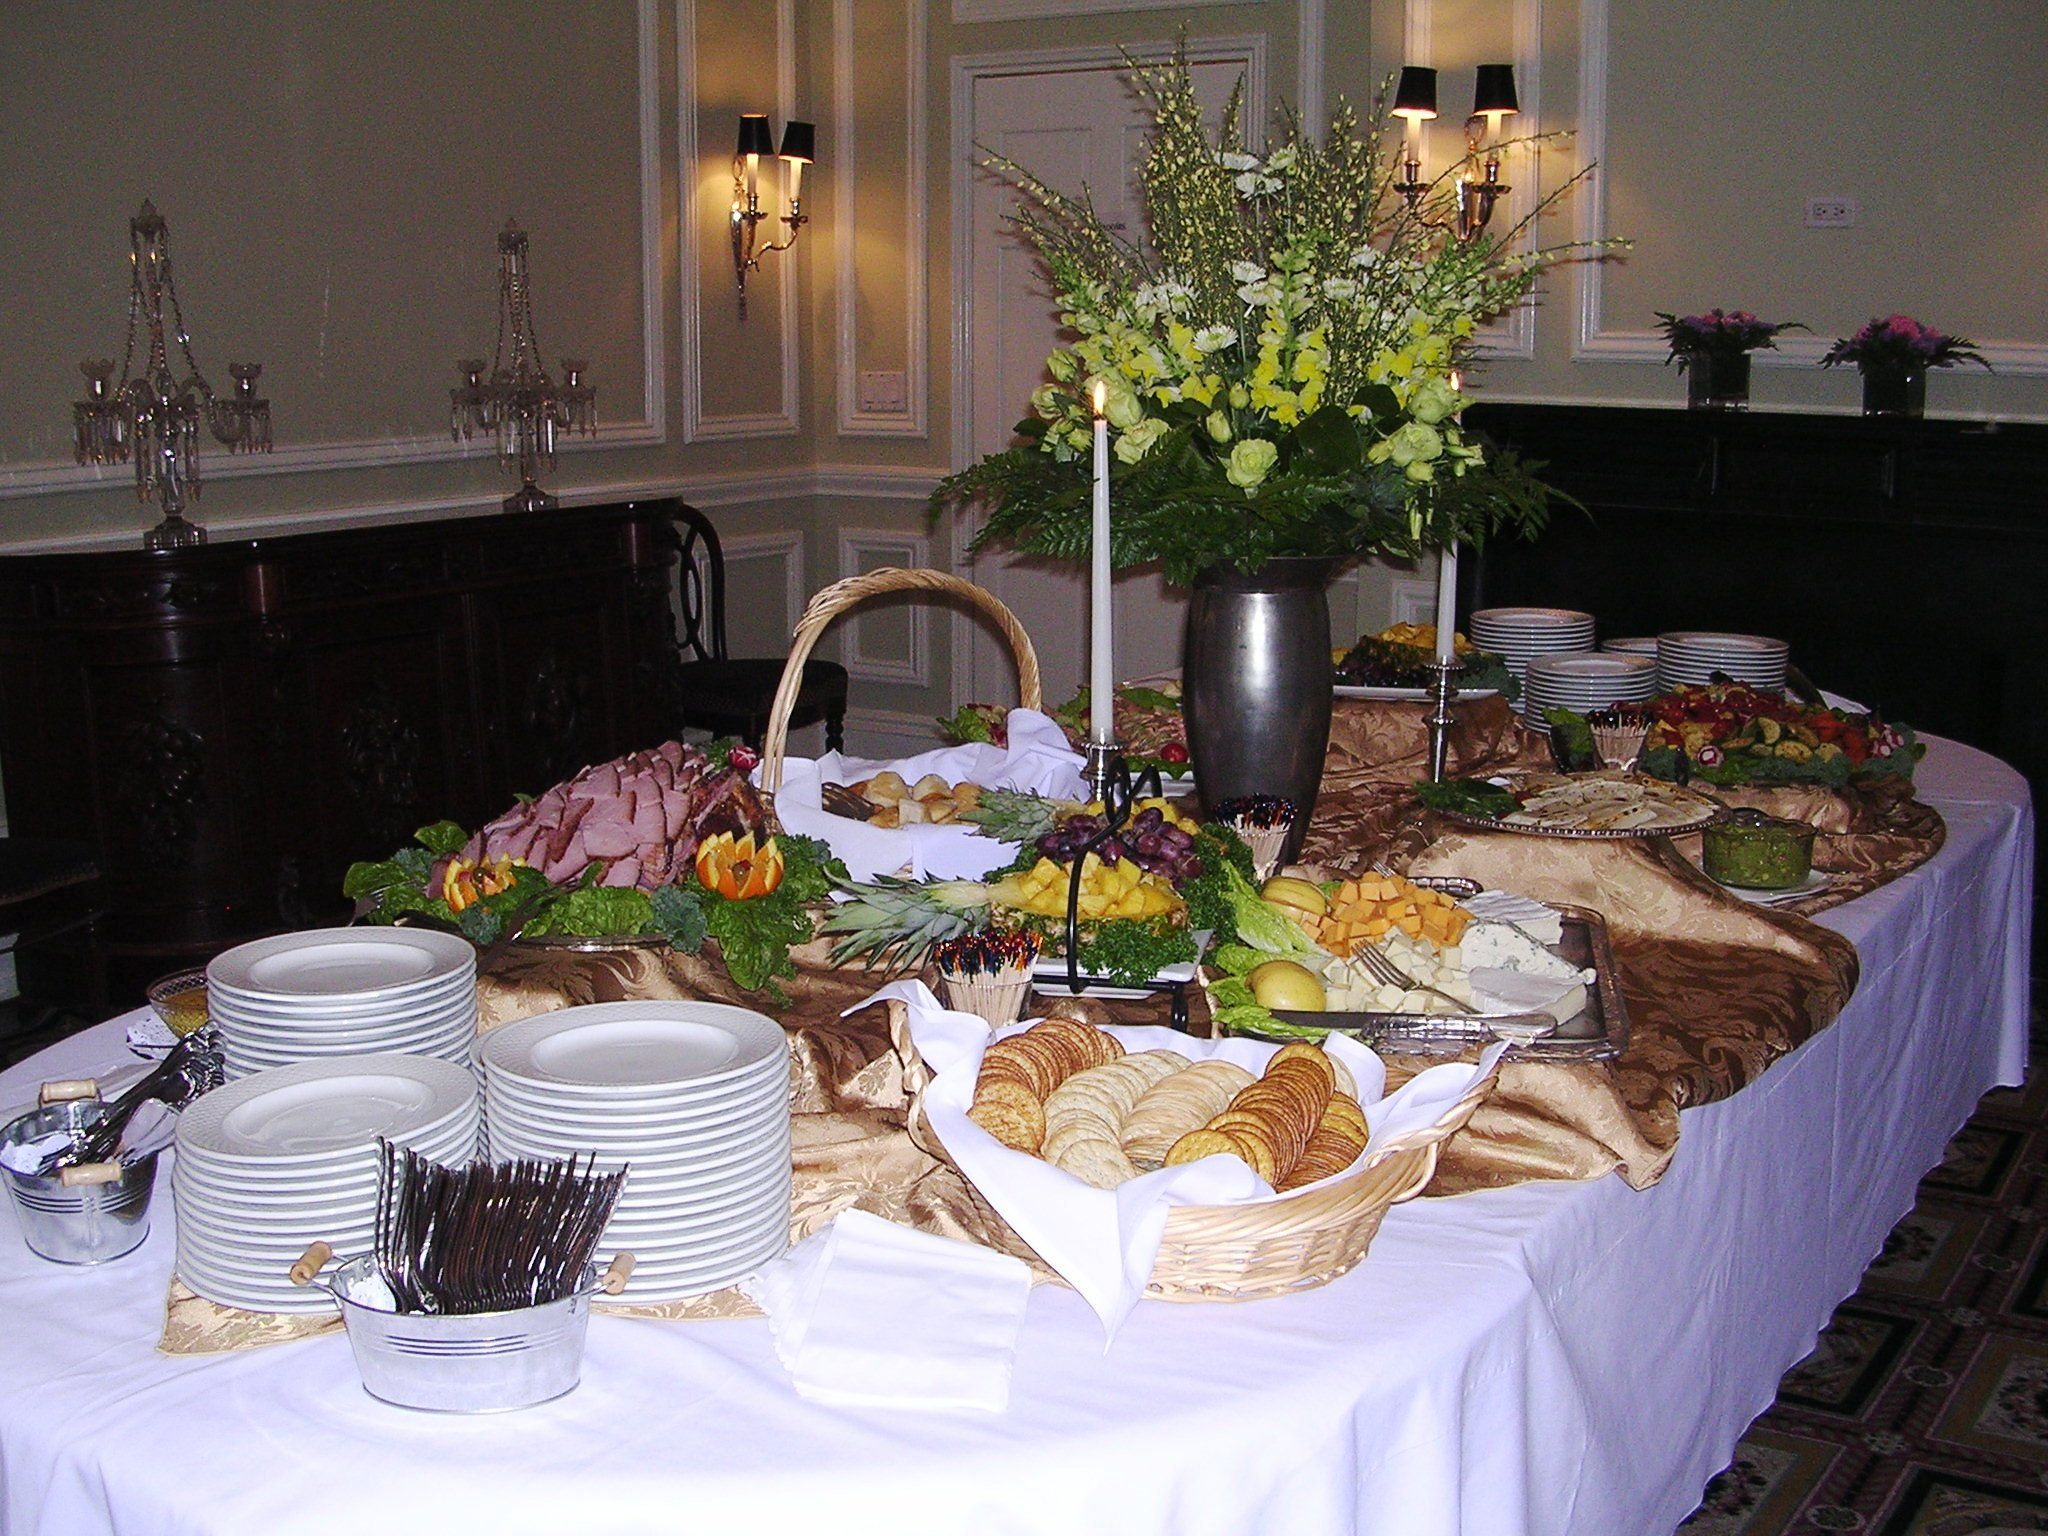 The Buffet Table In The Dining Room Of DACOR Bacon House Is Spread With A  Selection